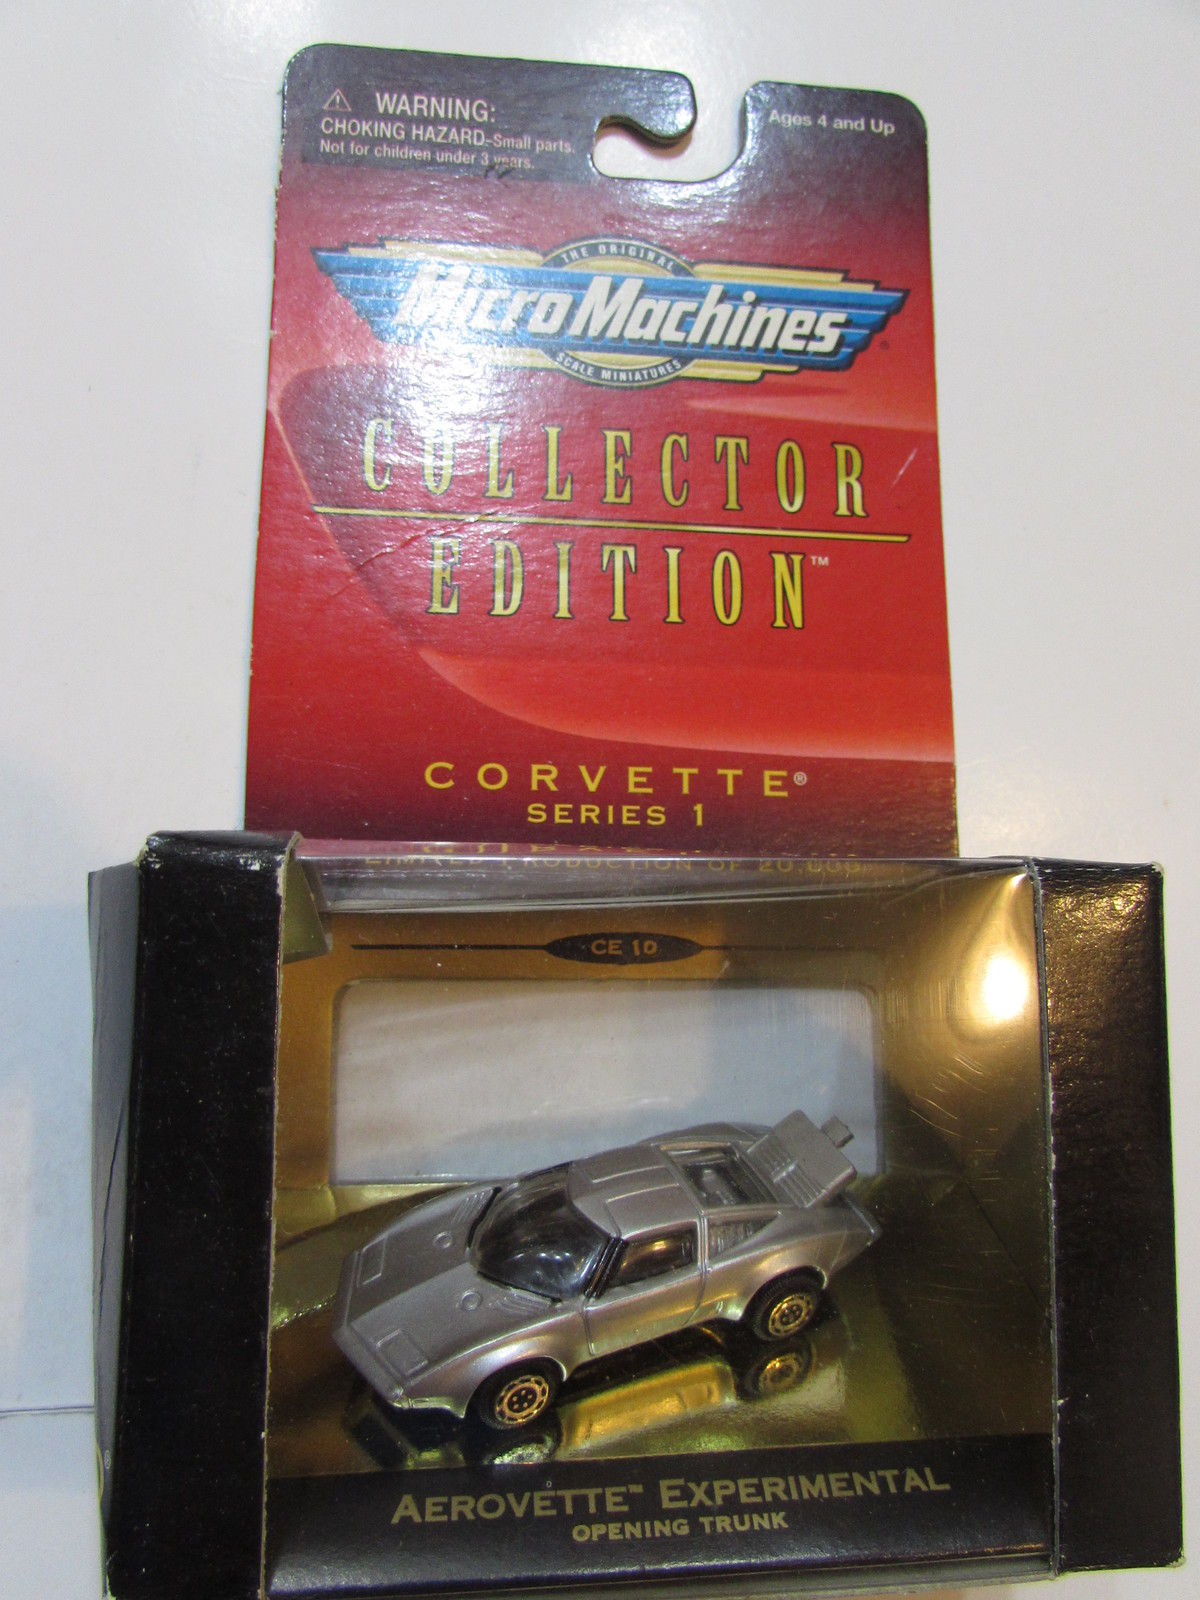 GALOOB MICRO MACHINES SERIES 1 CORVETTE AEROVETTE EXPERIMENTAL OPENING TRUNK